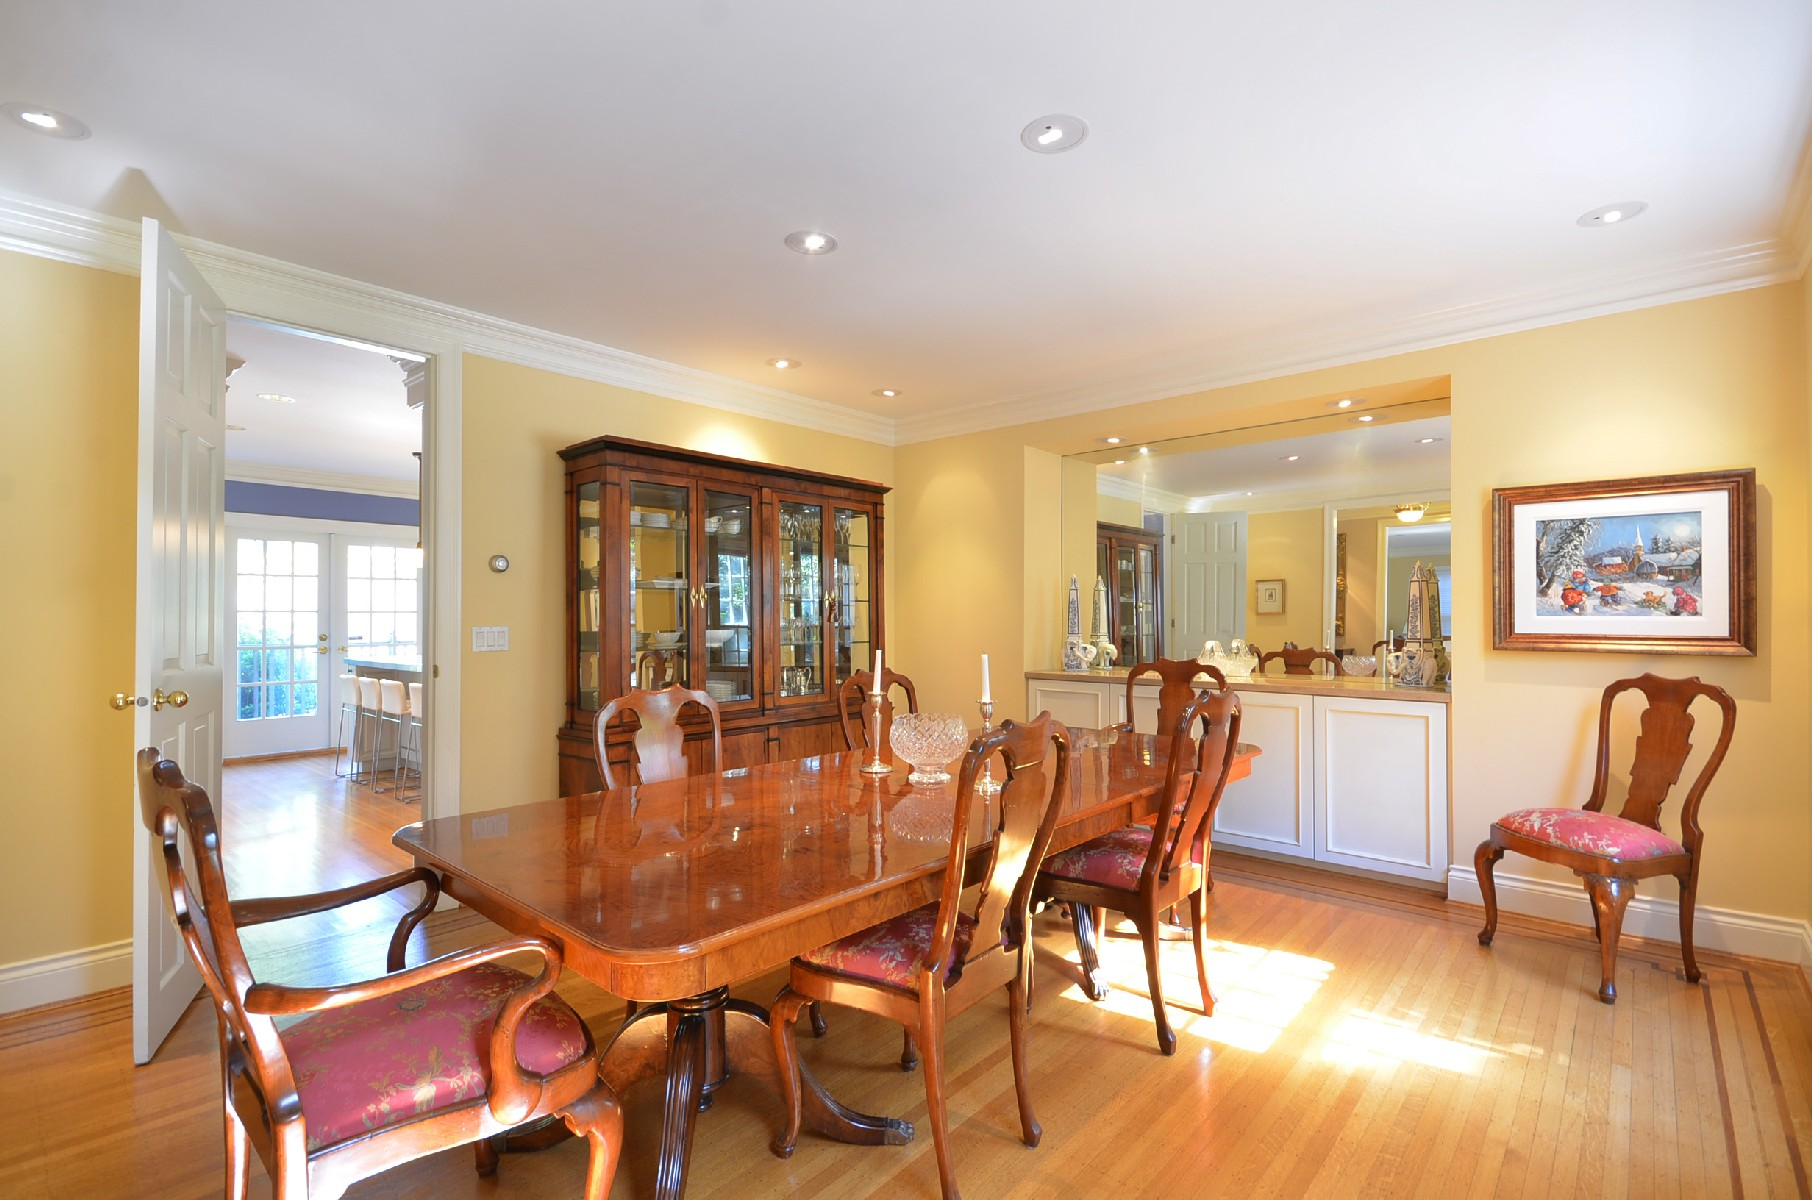 Dining room - Shaughnessy - 1777 West 38th Avenue, Vancouver, BC, Canada